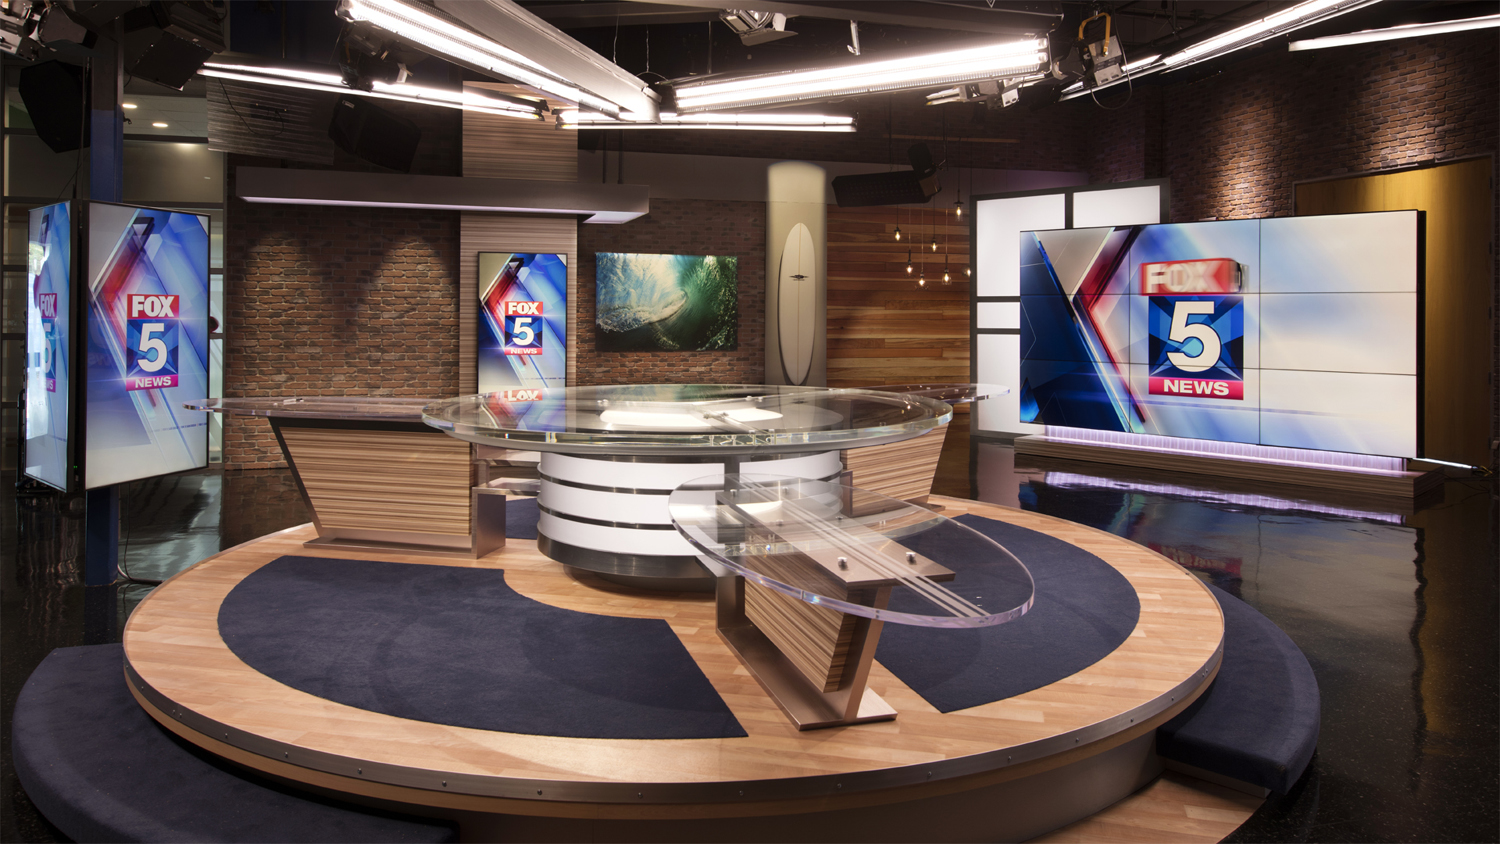 NCS_KSWB-Fox-5-San-Diego-TV-Studio_0004